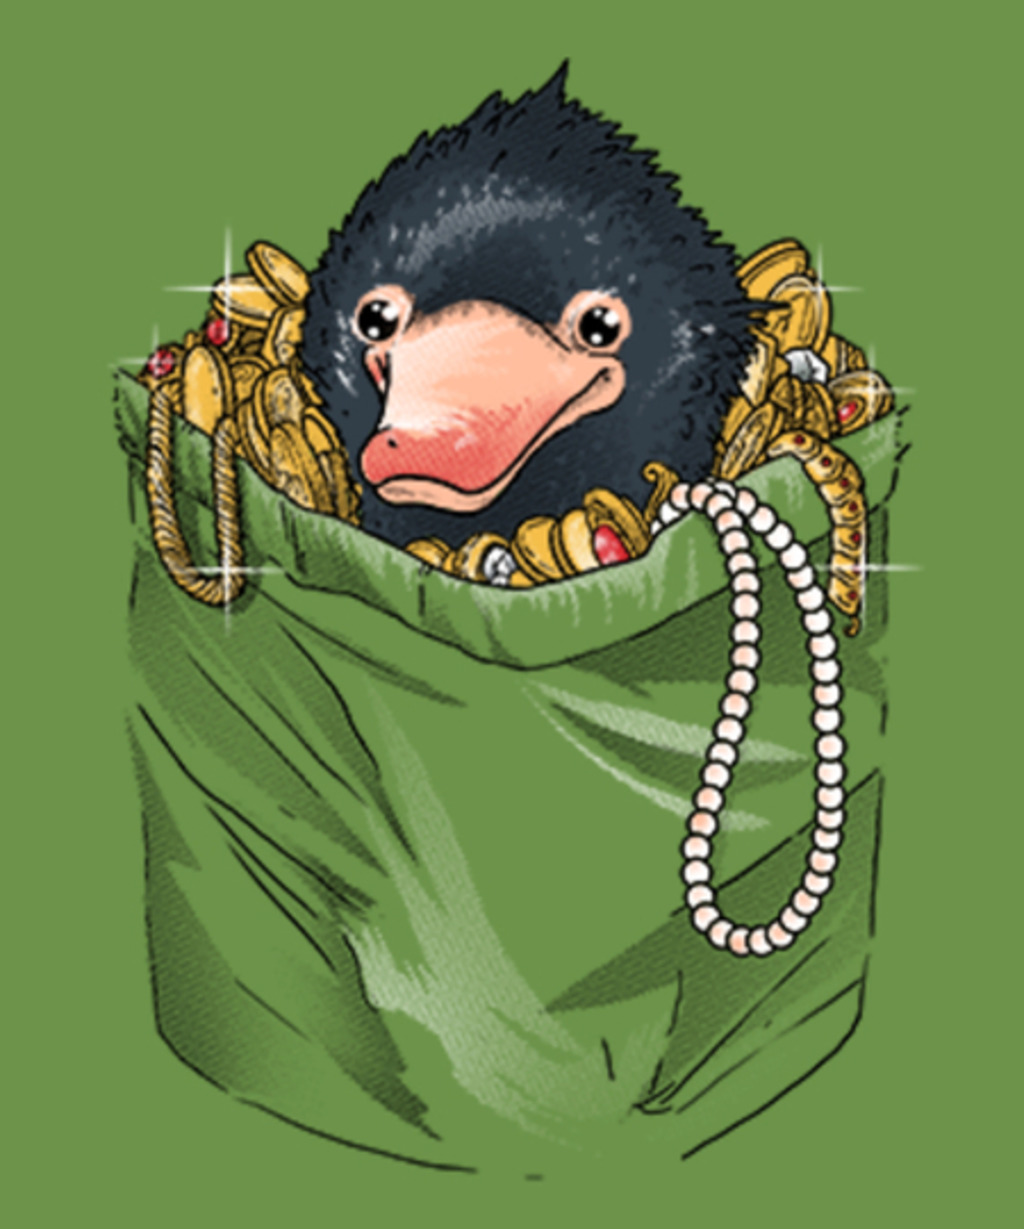 Qwertee: Niffler in your pocket